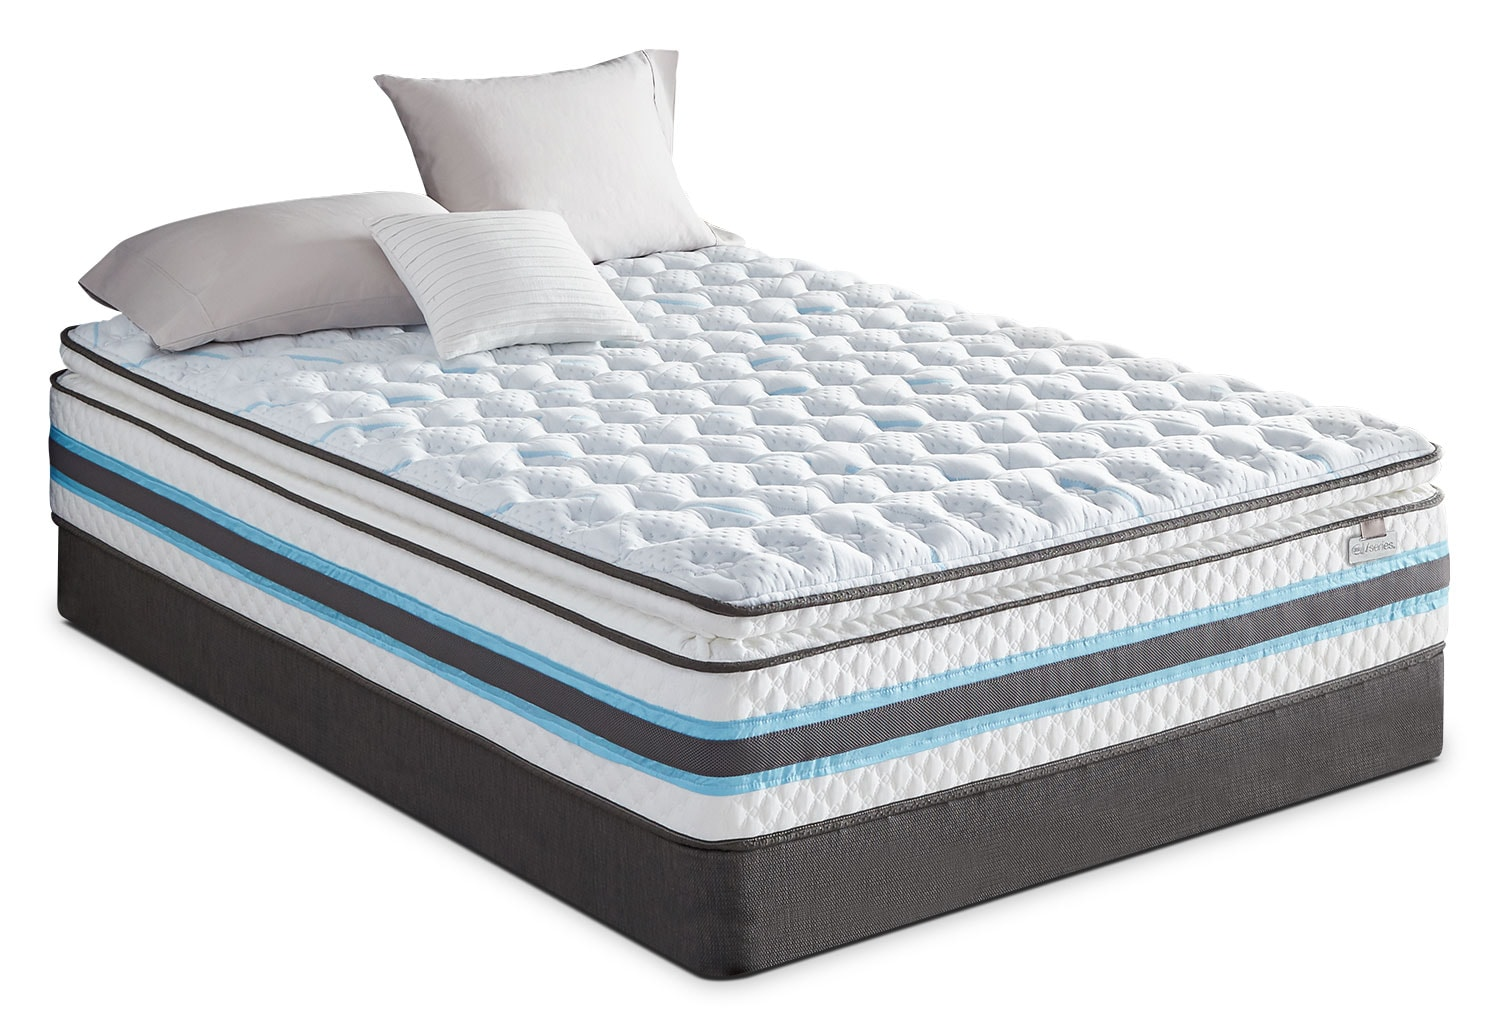 Mattresses and Bedding - Serta iSeries® Breathtaking Pillow-Top Plush Low-Profile Split Queen Mattress Set